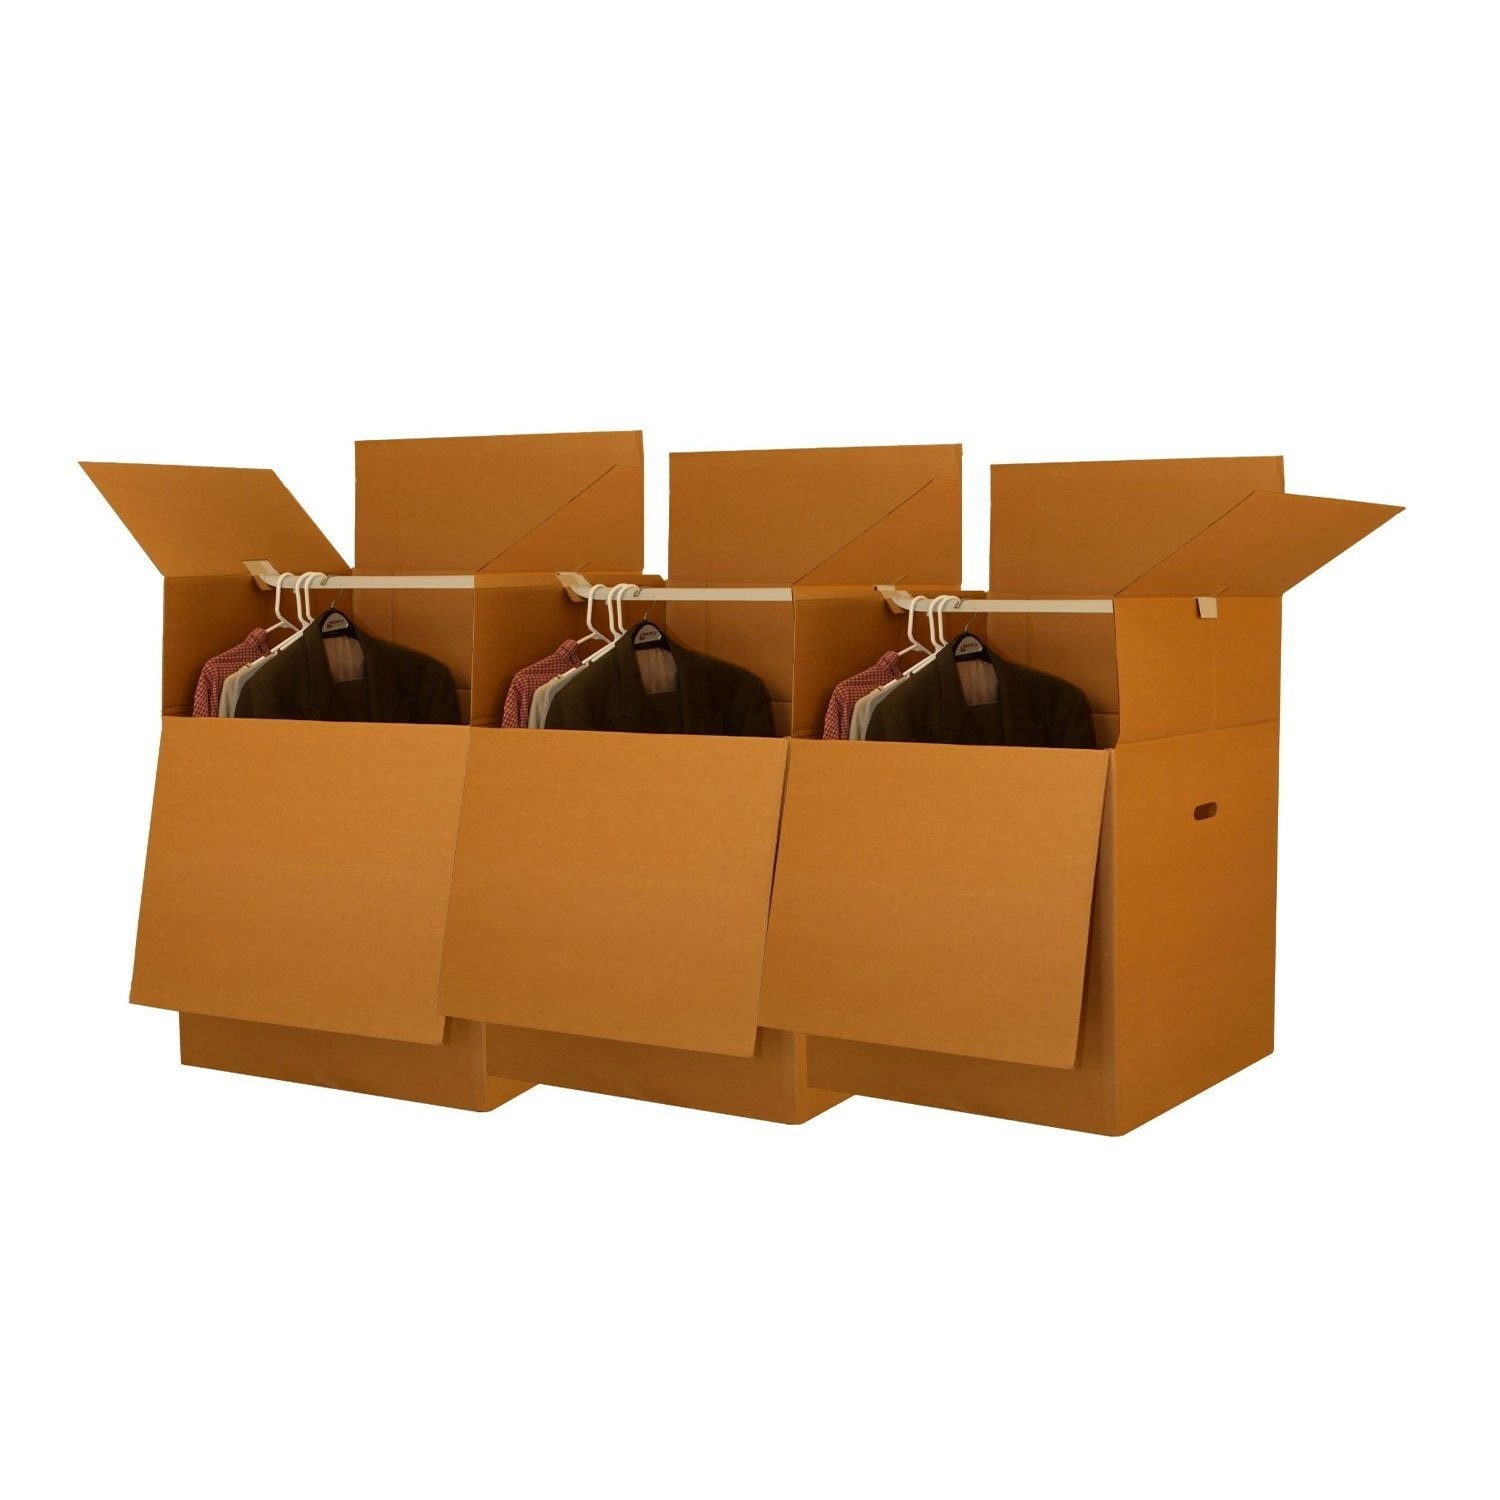 Uboxes Wardrobe Moving Boxes, 24x24x34in, 3 Pack, Tall Boxes